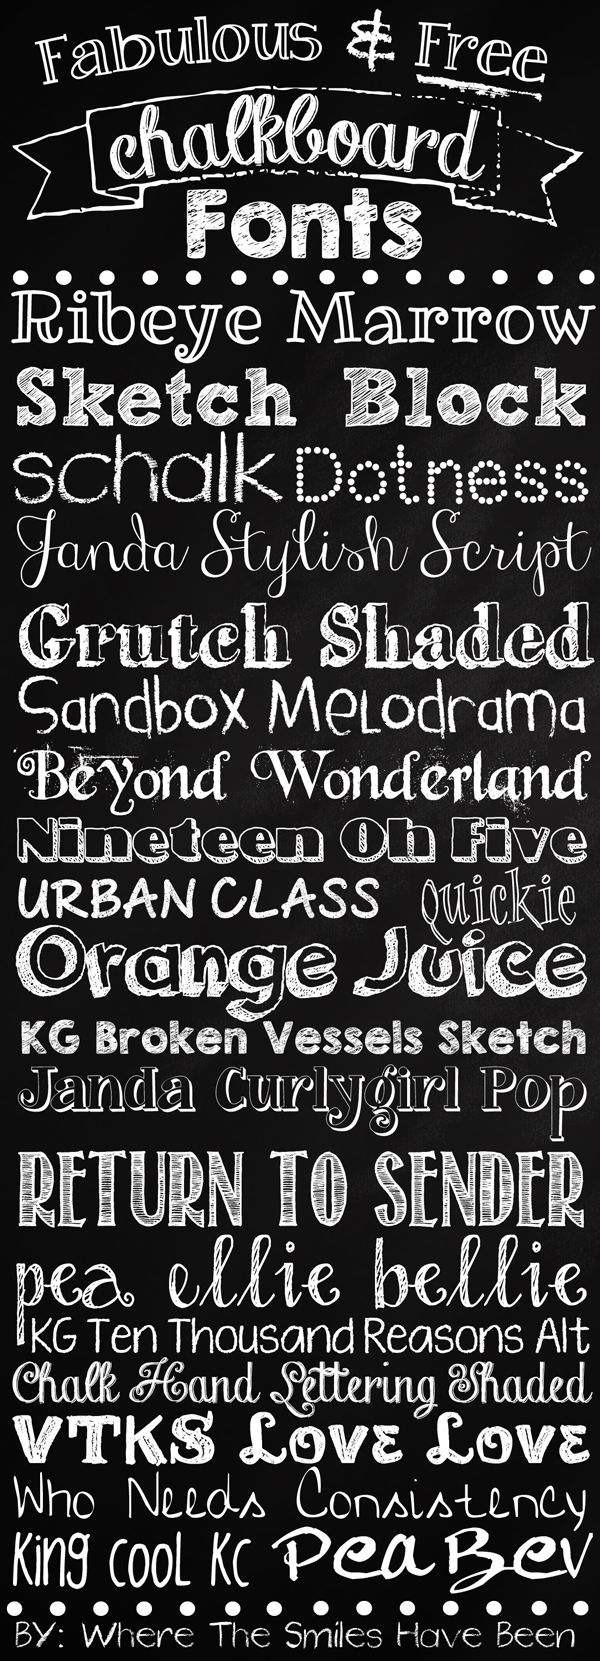 A collection of some fabulous & free chalkboard fonts that are available online. Links are provided so you can easily create your own chalkboard print!